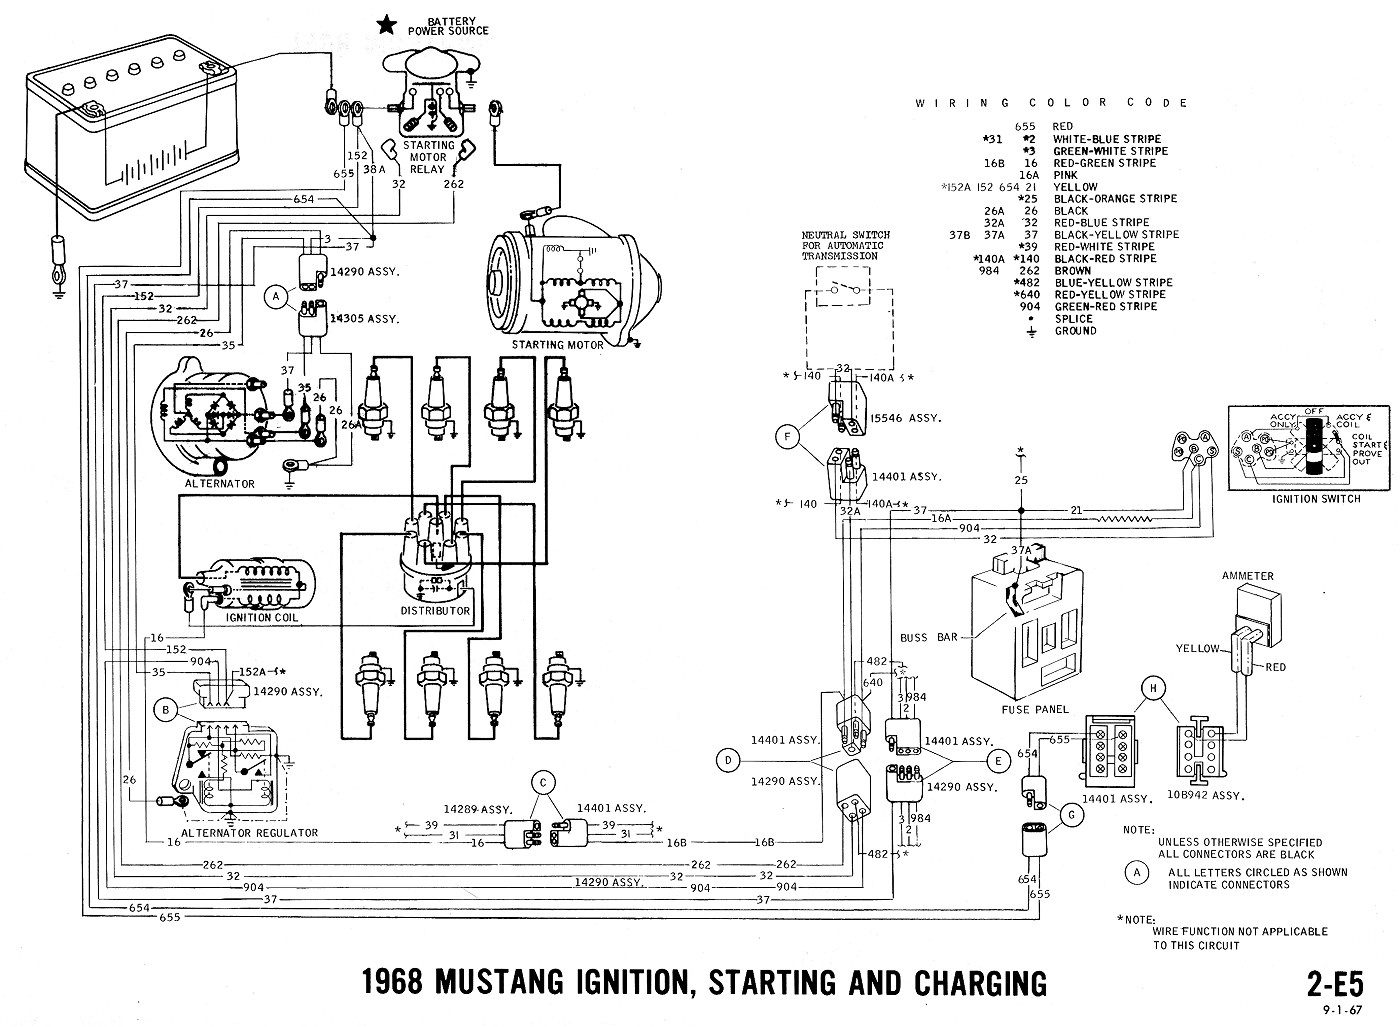 E5 1968 mustang wiring diagrams evolving software 68 mustang alternator wiring diagram at nearapp.co